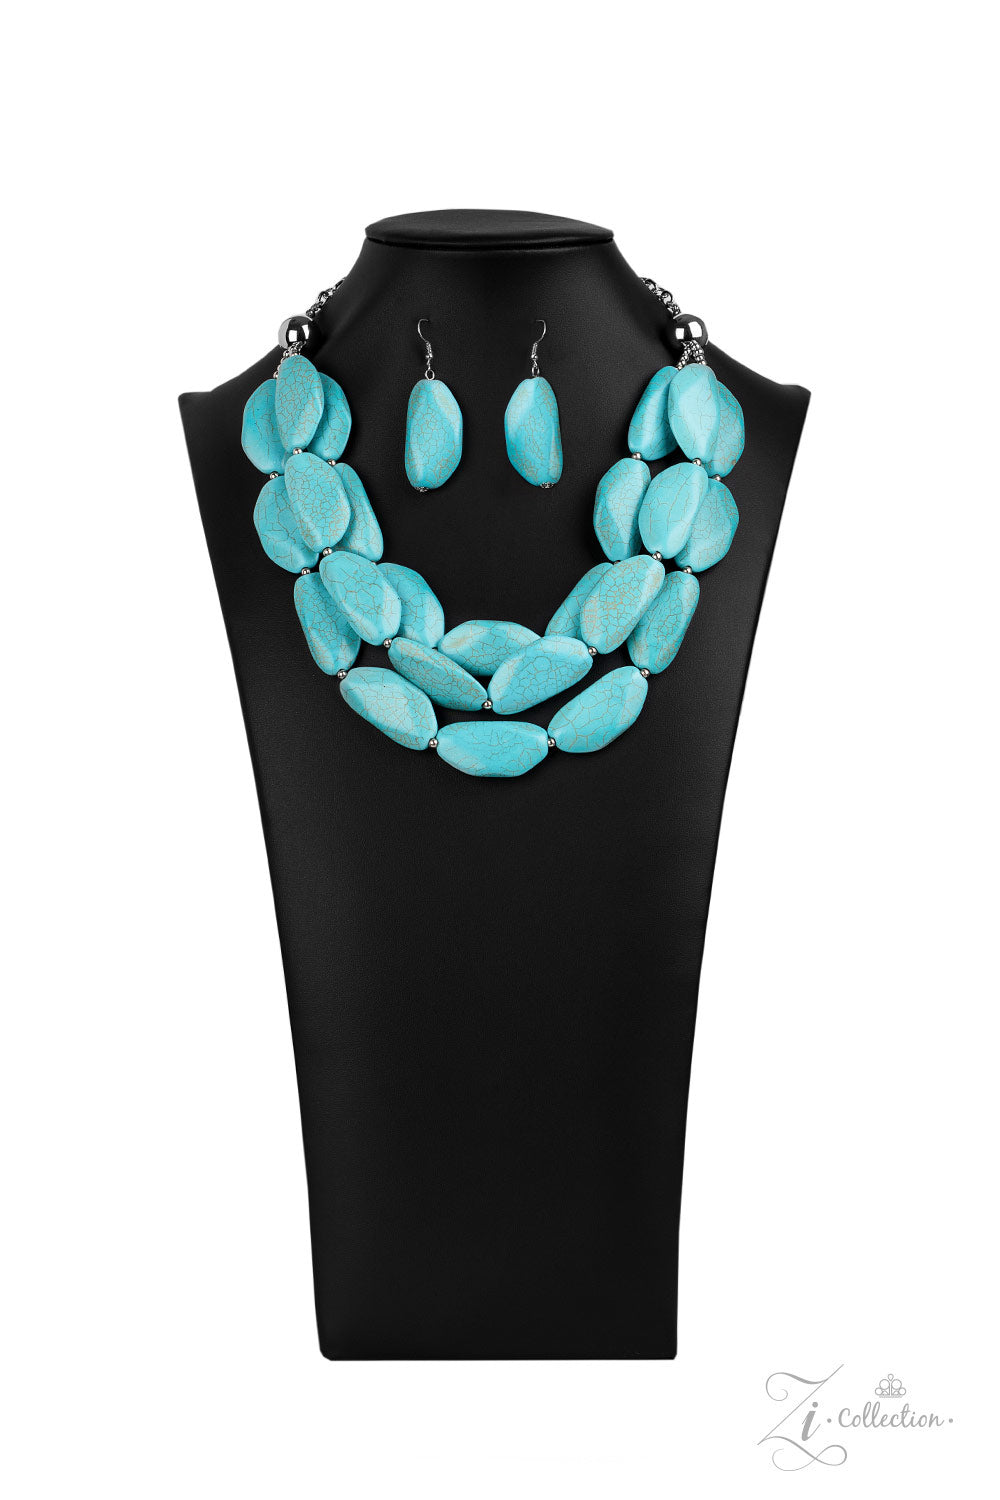 2020 Zi Collection Authentic Paparazzi Accessories Necklace